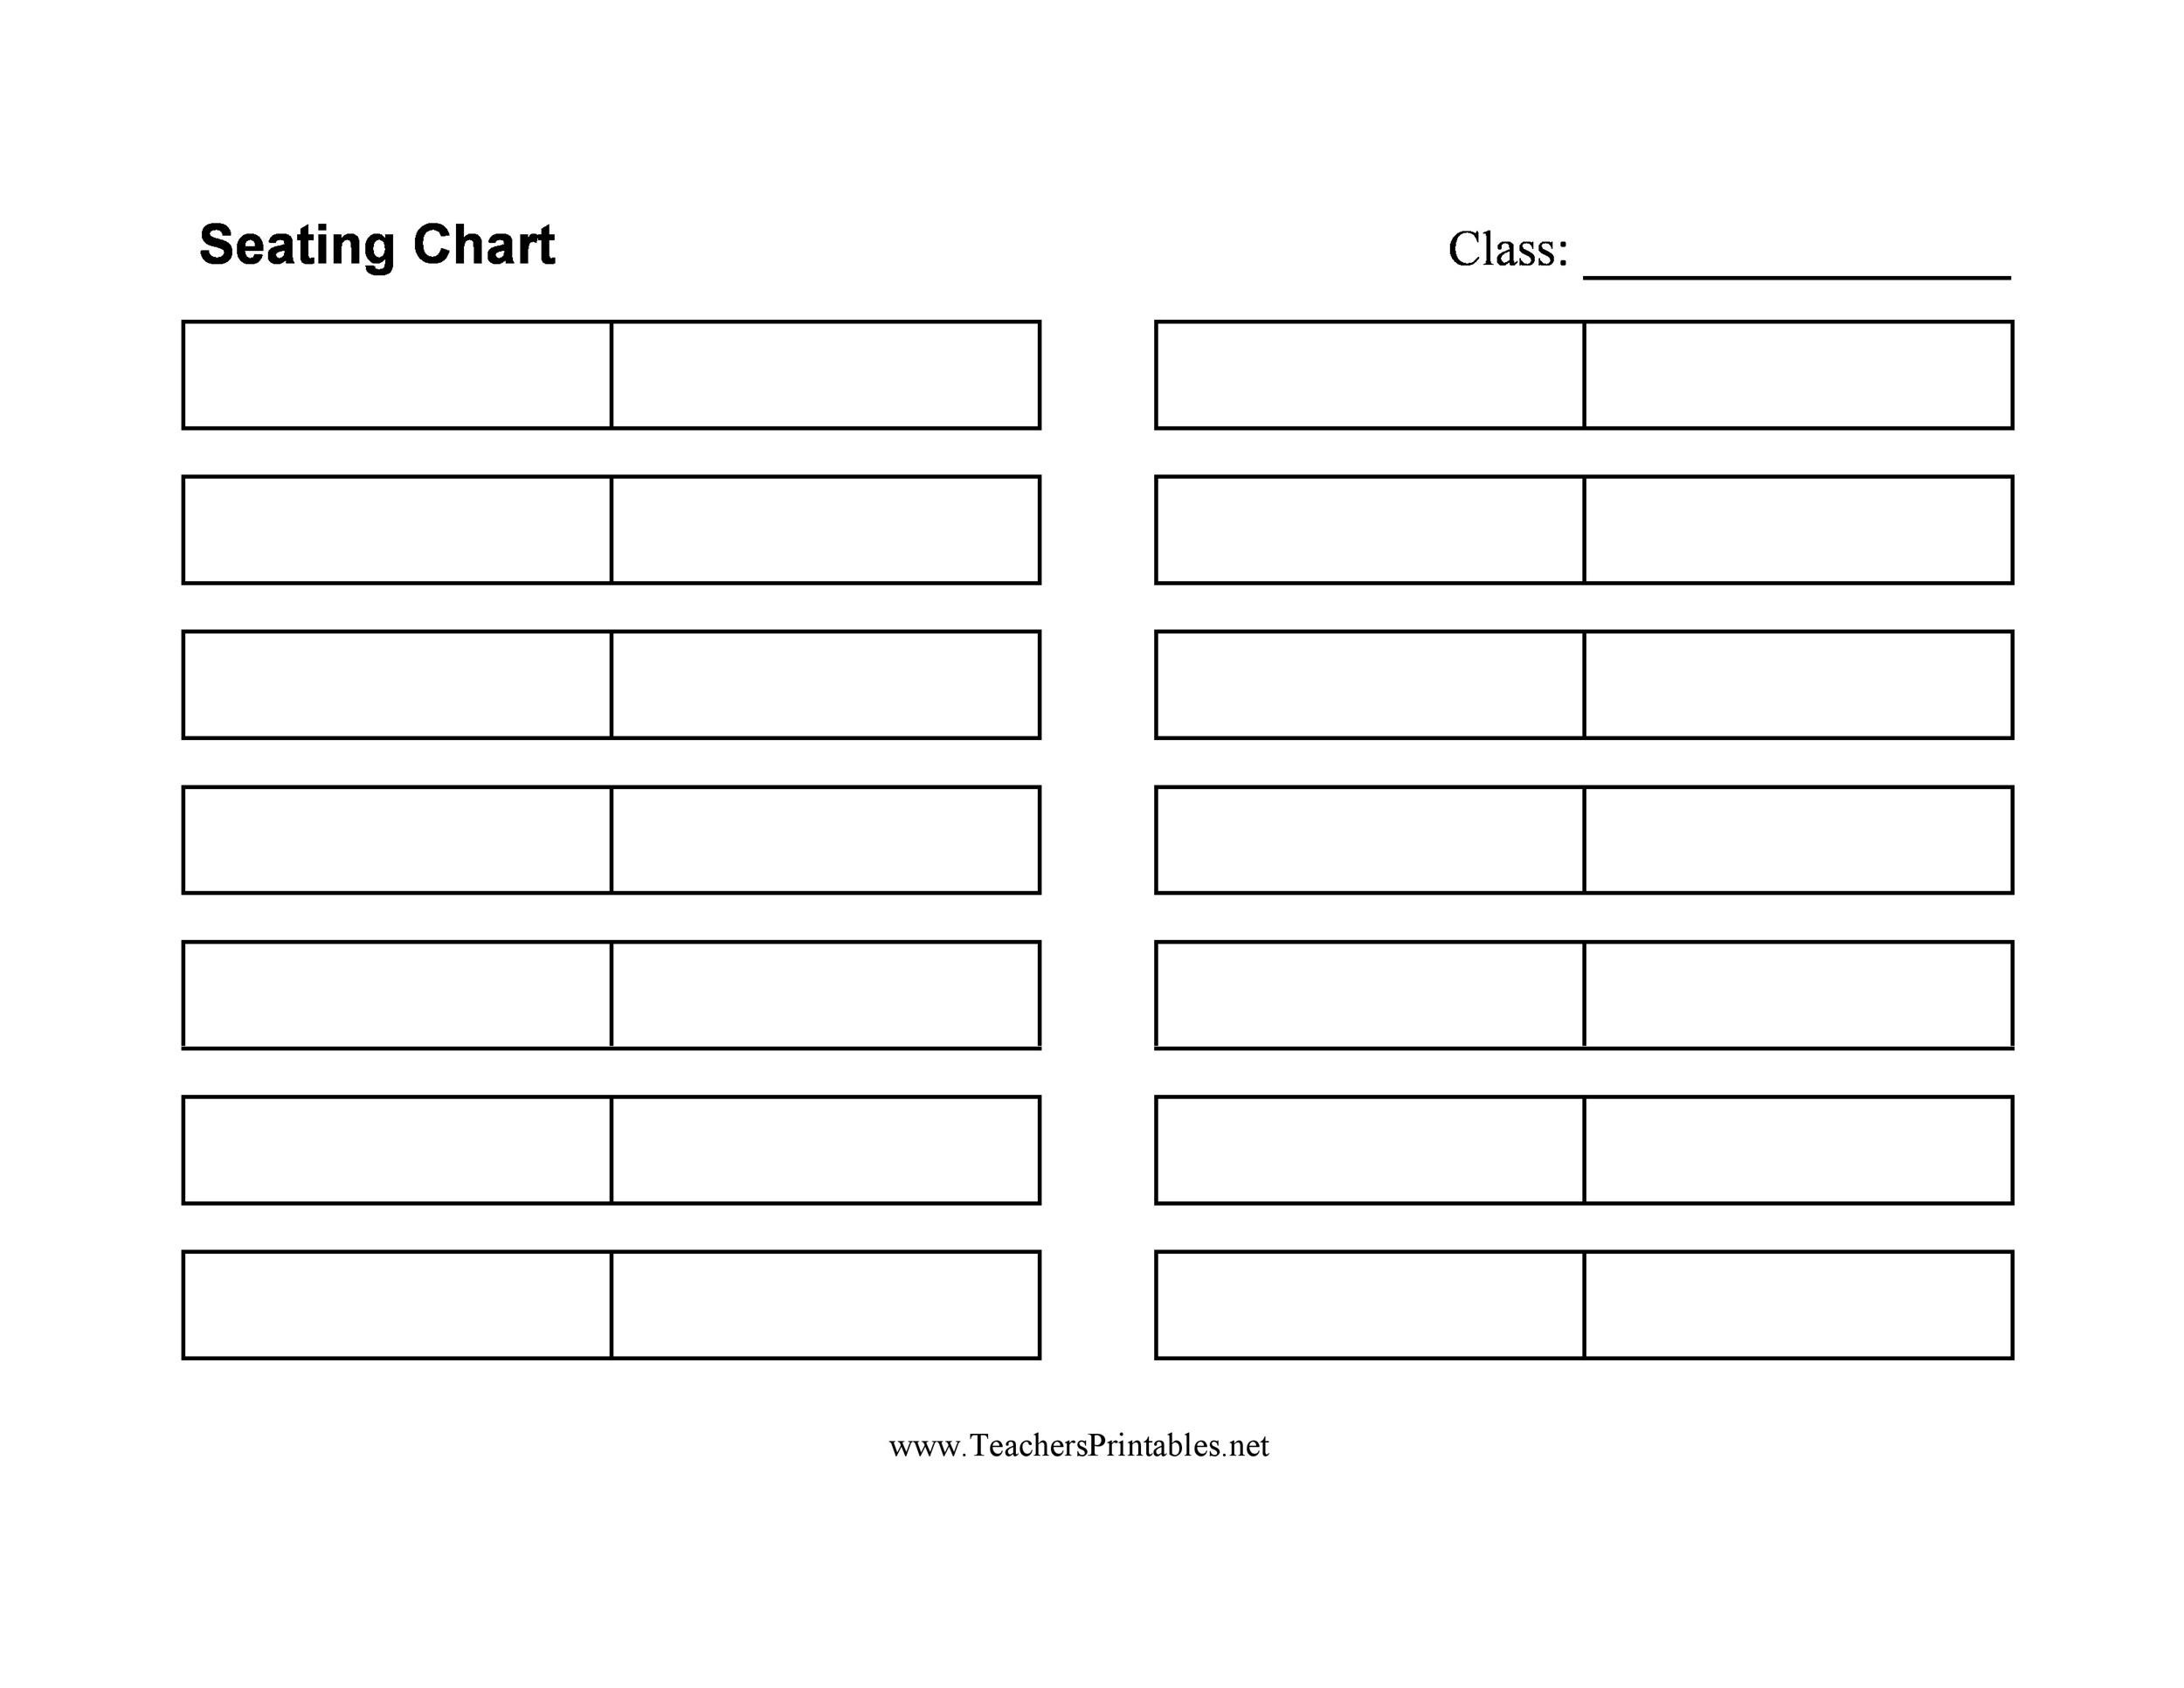 seating chart template. Black Bedroom Furniture Sets. Home Design Ideas